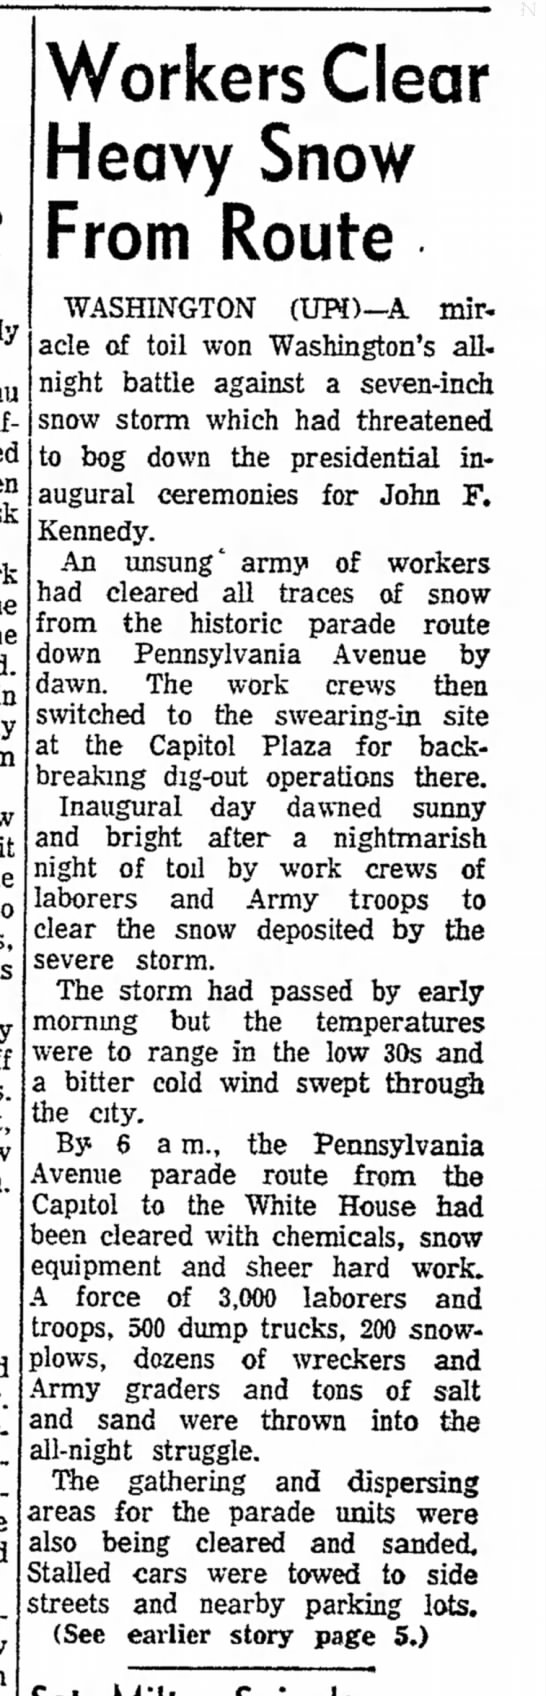 Workers clear heavy snow for Kennedy inauguration, 1961